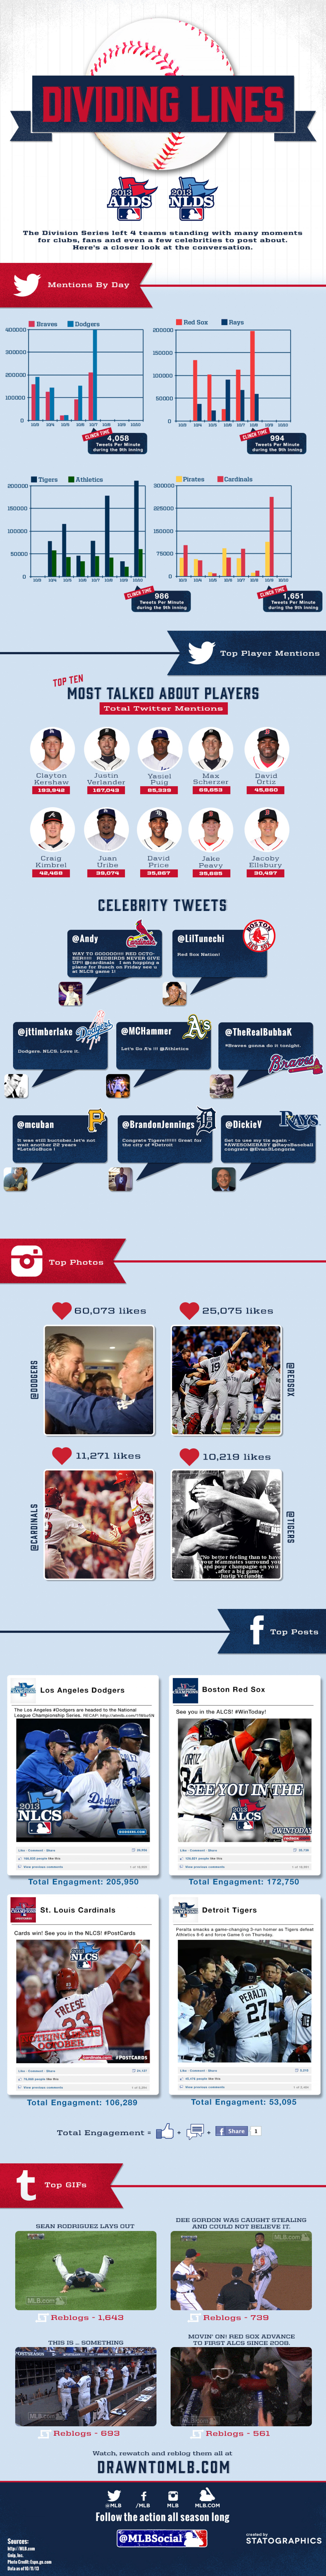 MLB Division Series Infographic